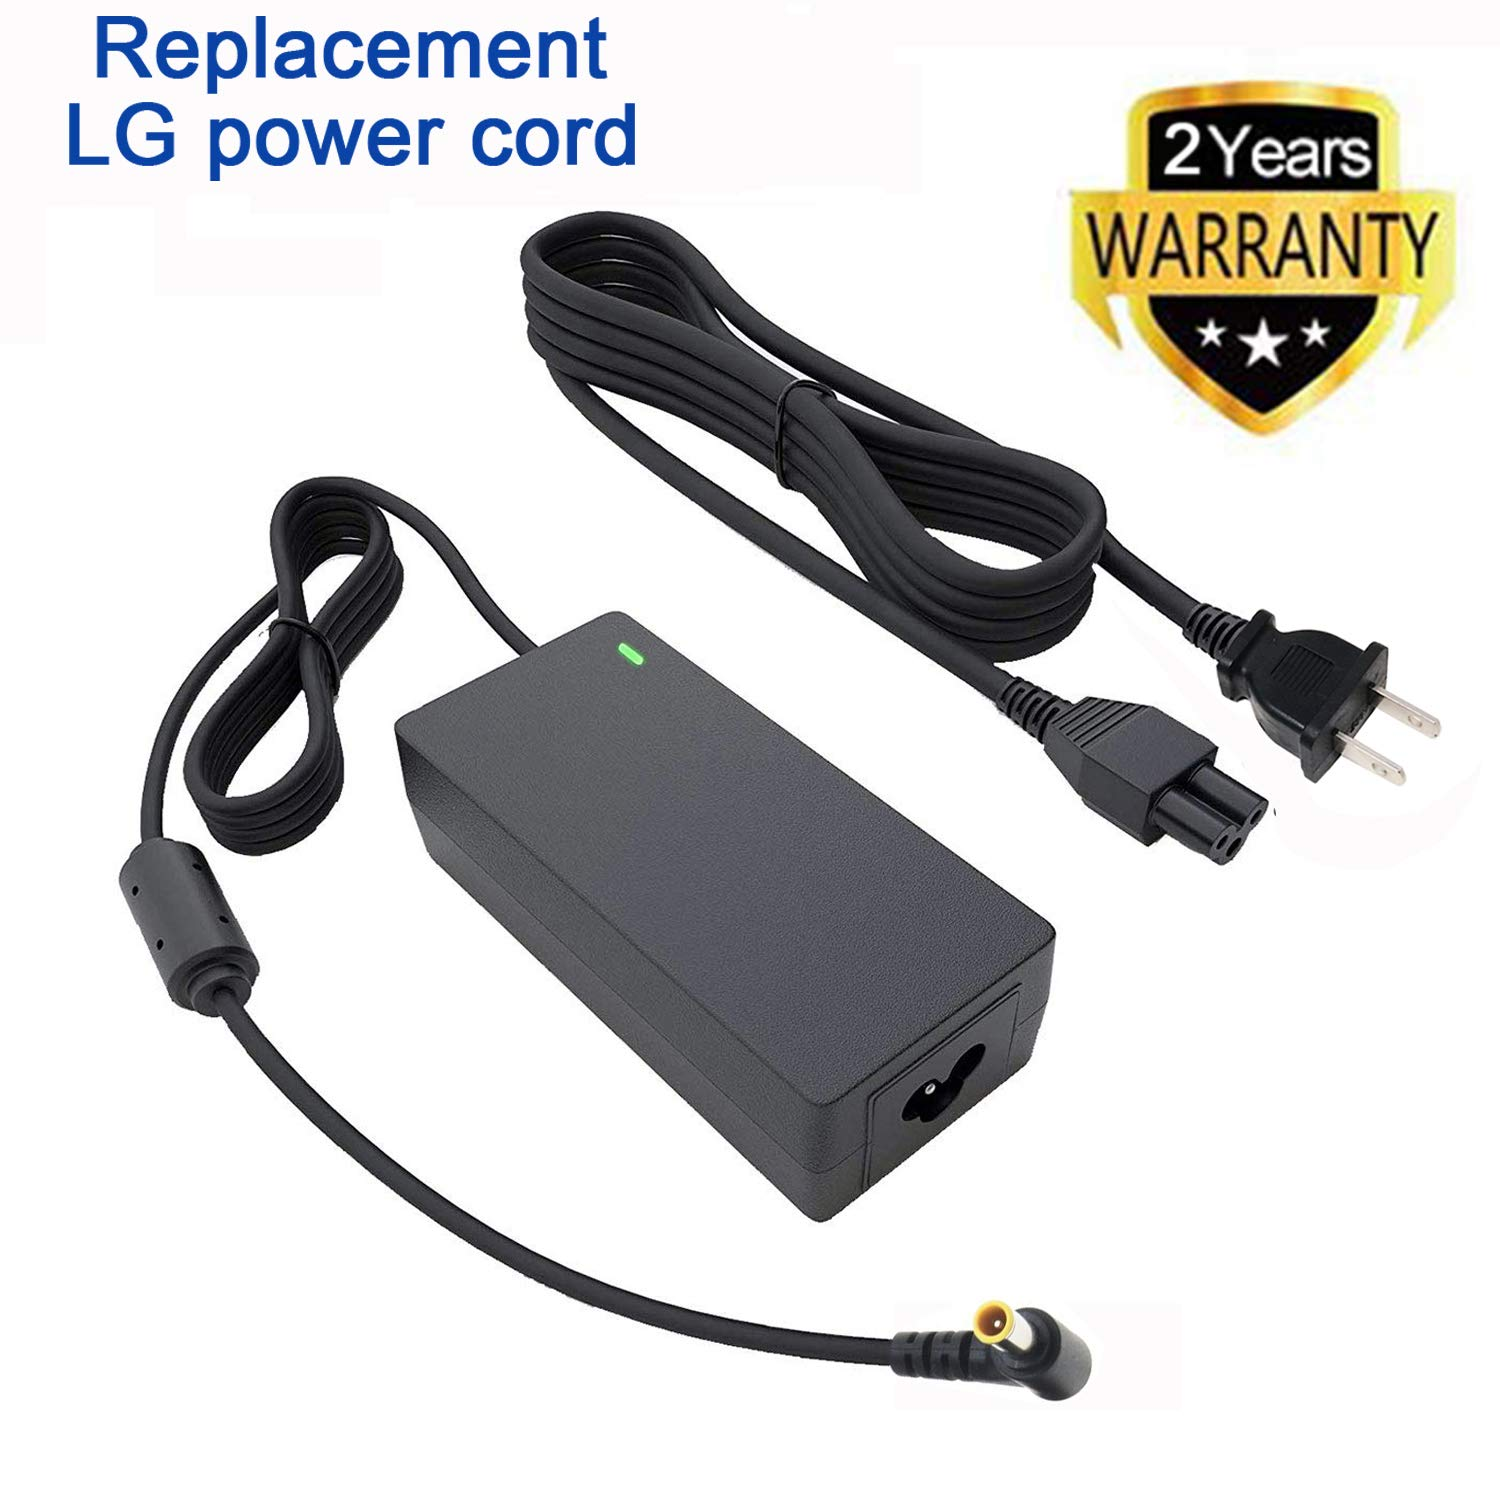 TYZEST 19V Ac Adapter for LG Electronics 19'' 20'' 22'' 23'' 24'' 27'' LED LCD Monitor LED LCD HDTV Widescreen Flatron IPS236V IPS236-PN E2750VR-SN Replacement Power Supply Charger Cord